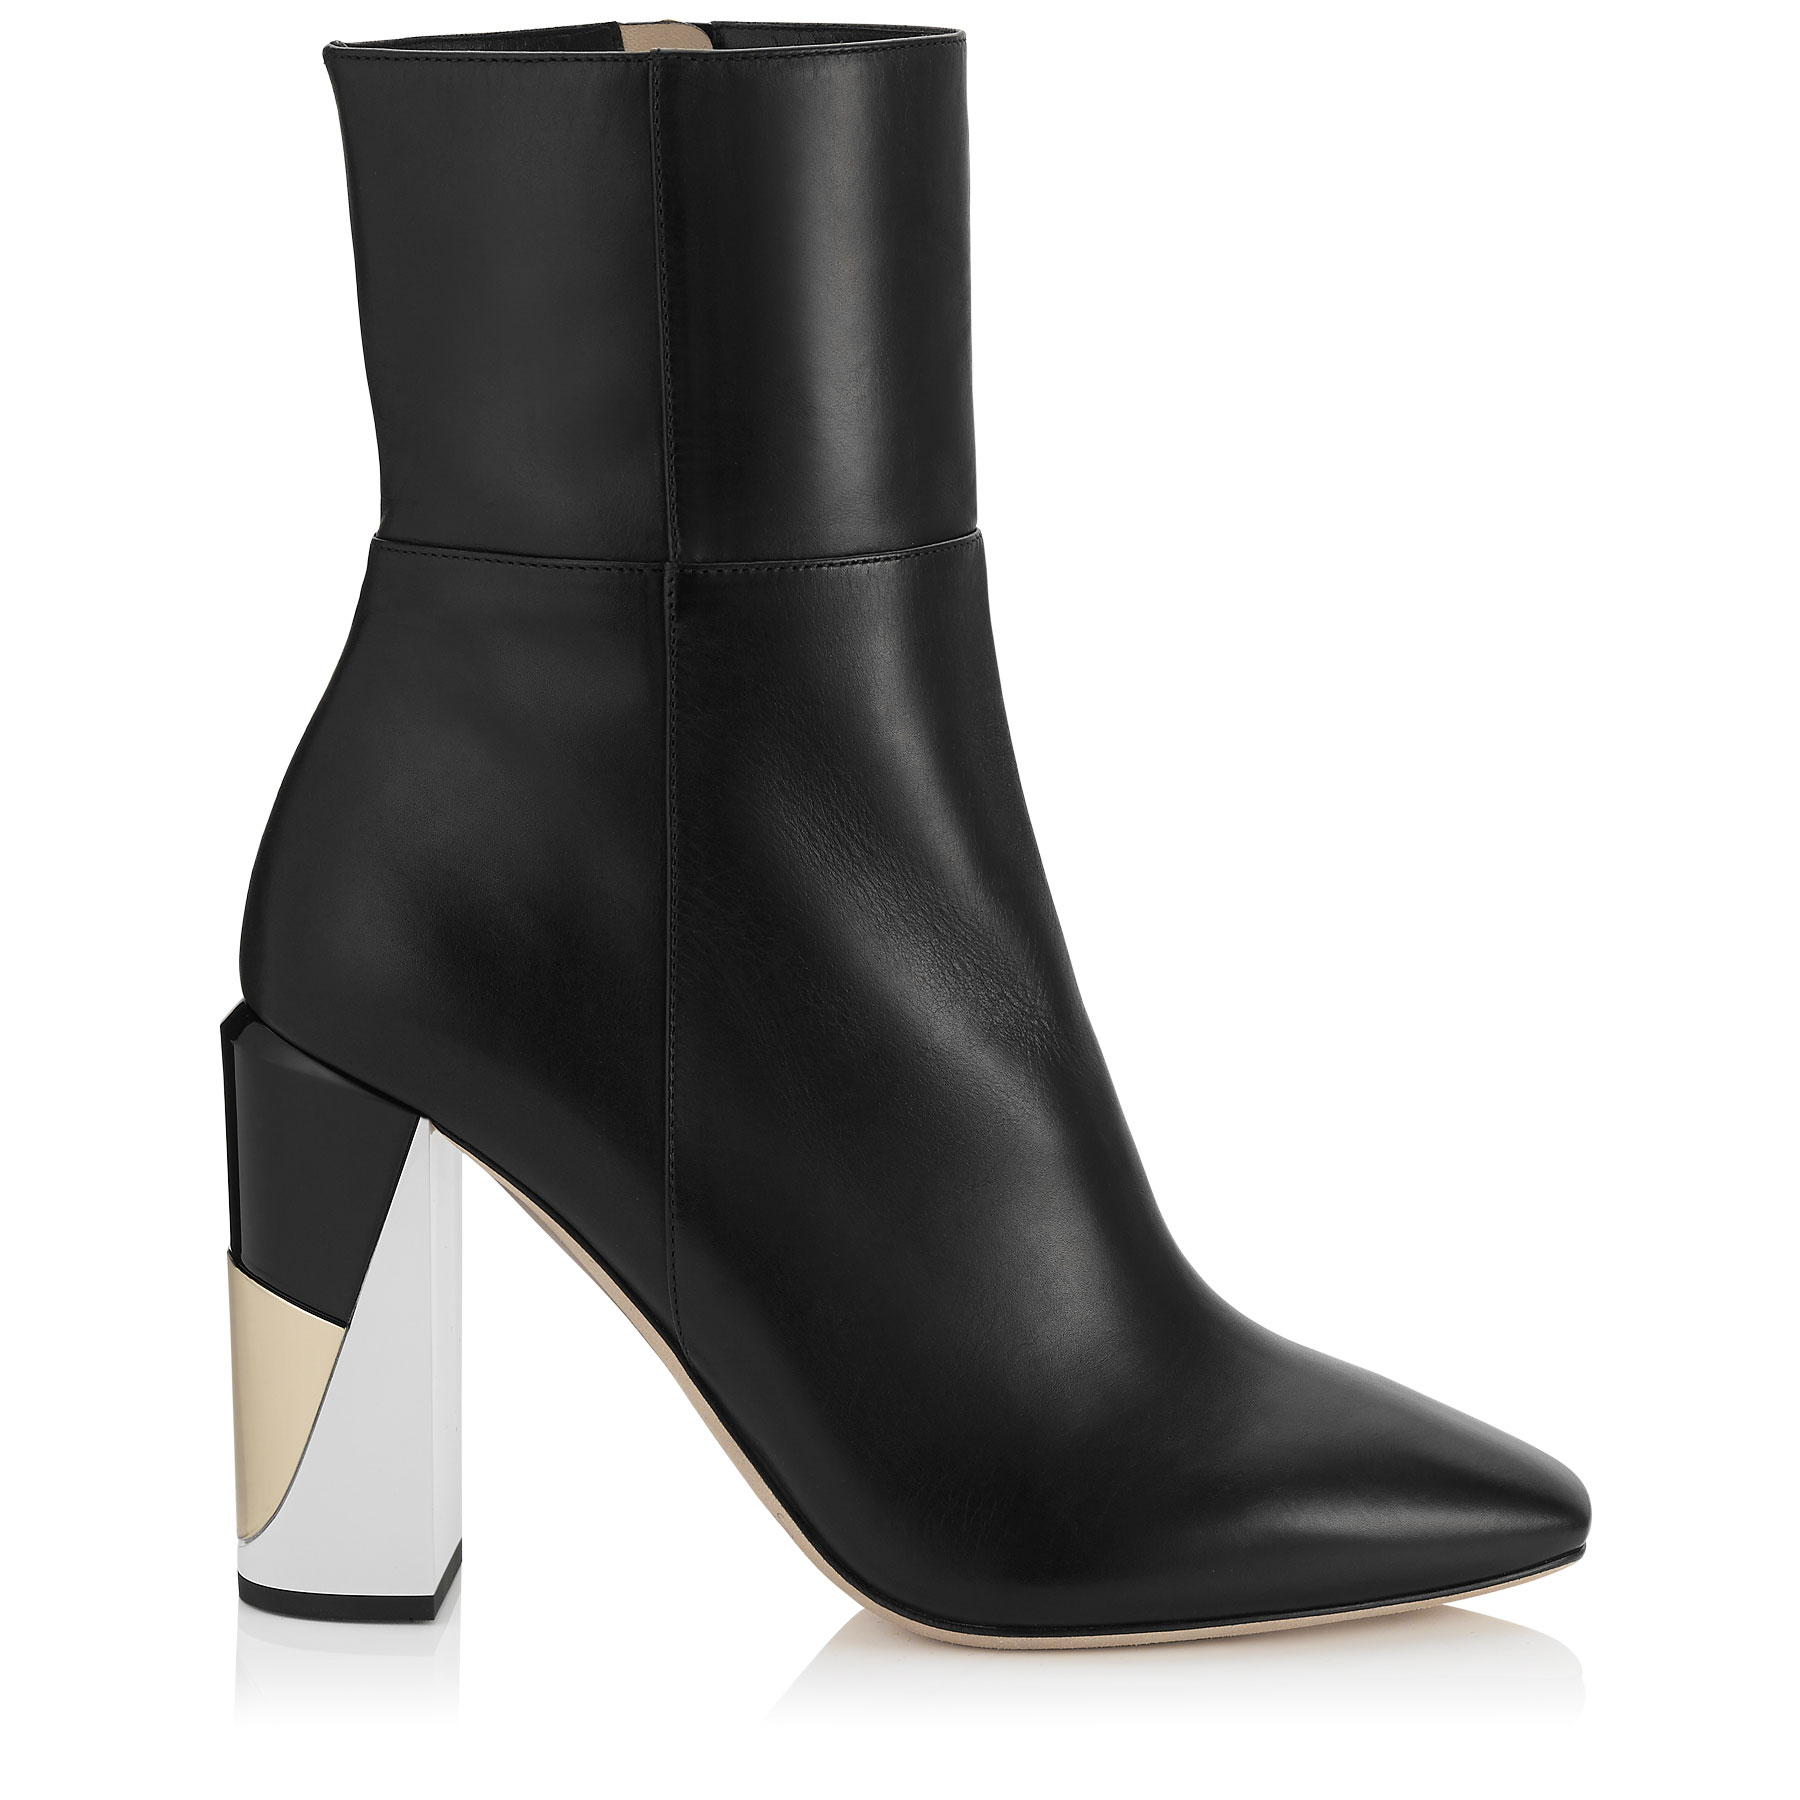 Womens Designer Boots | Elegant Ankle Boots | JIMMY CHOO